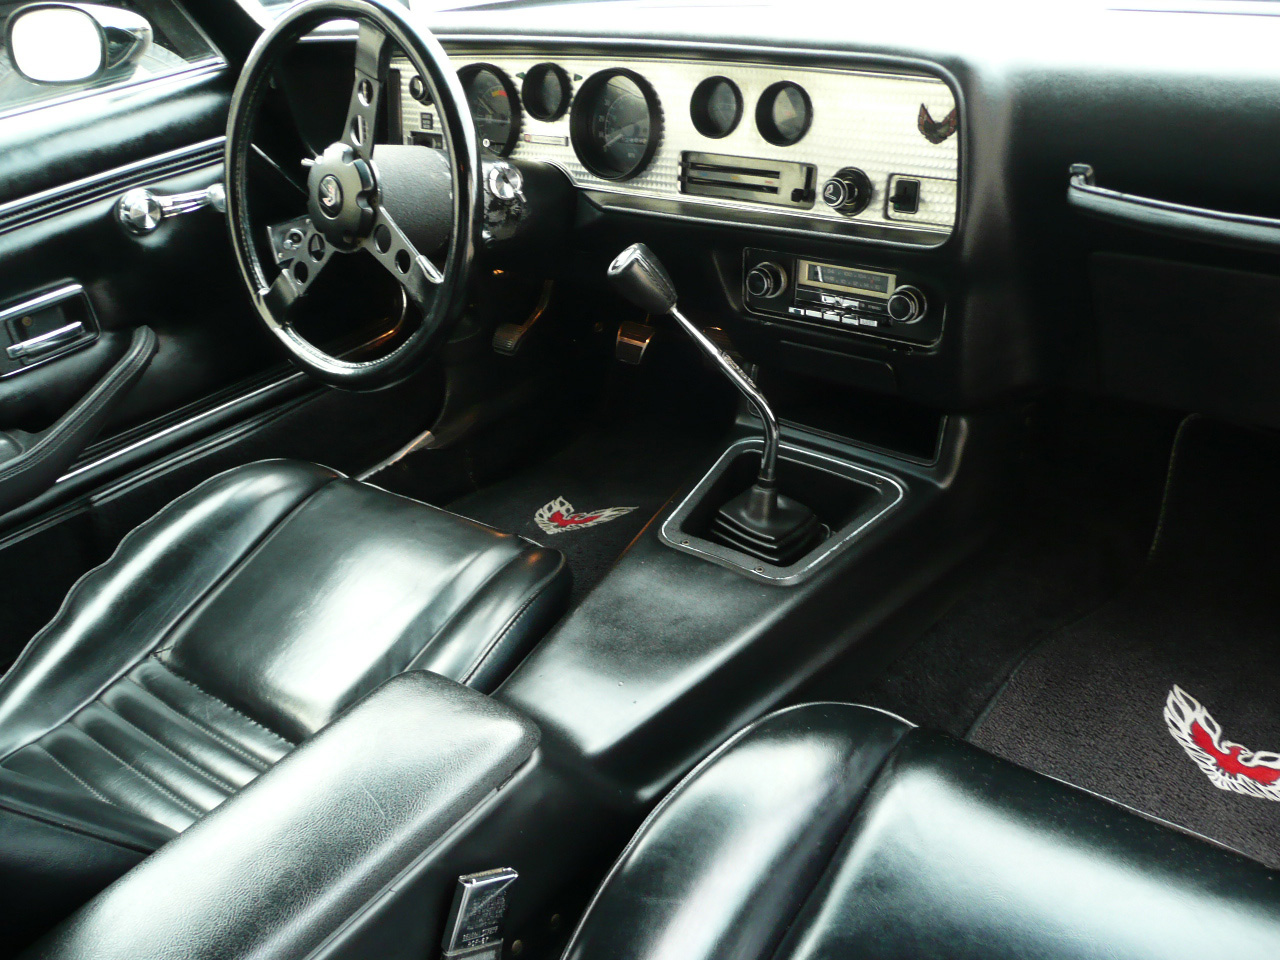 ... 1978 PONTIAC FIREBIRD TRANS AM COUPE   Interior   80983 ... Pictures Gallery